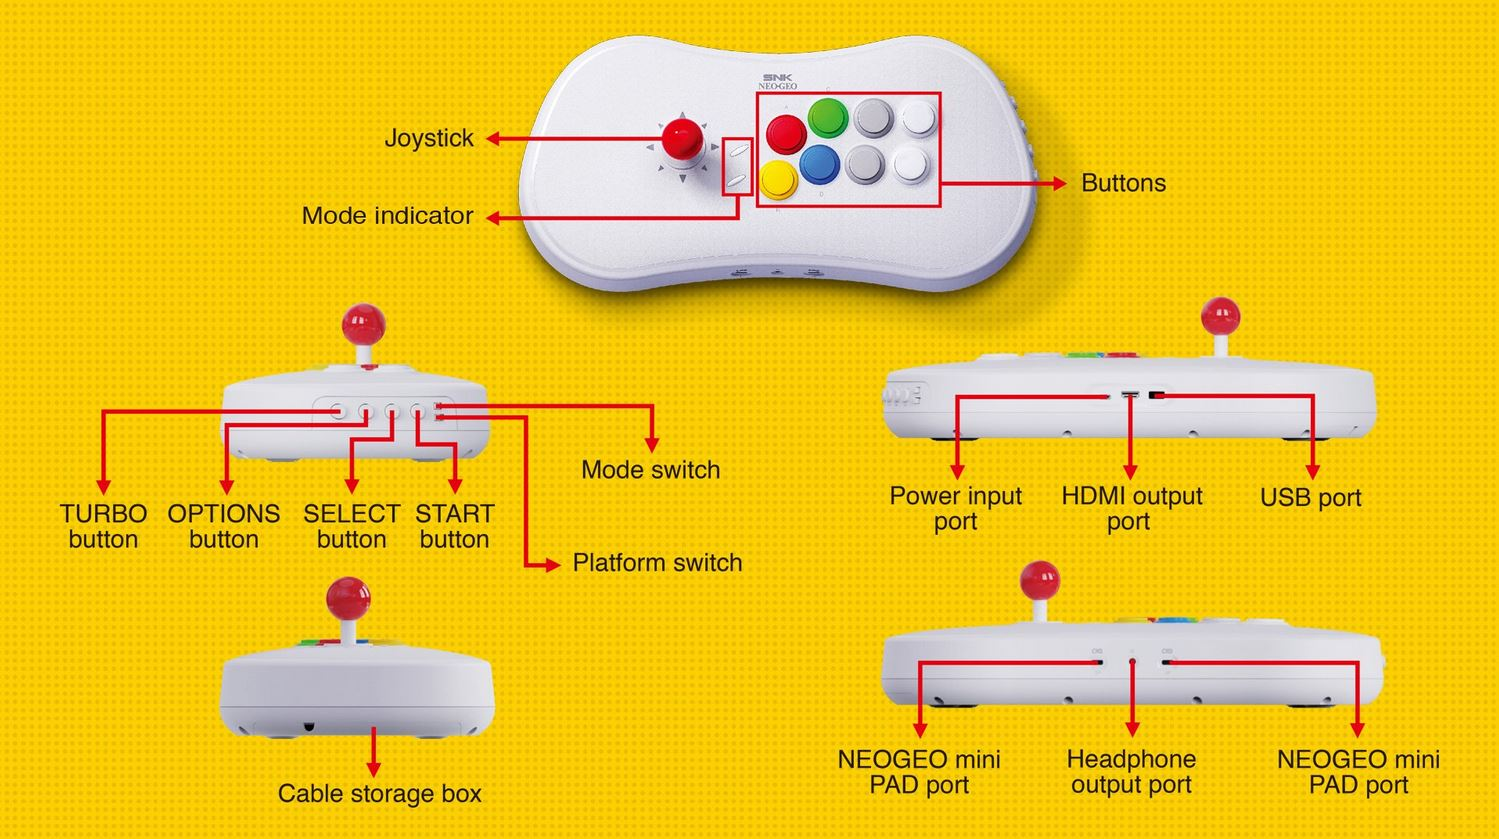 https://www.fightersgeneration.com/nf8/dl/neogeo-arcade-stick-pro2019-4.JPG